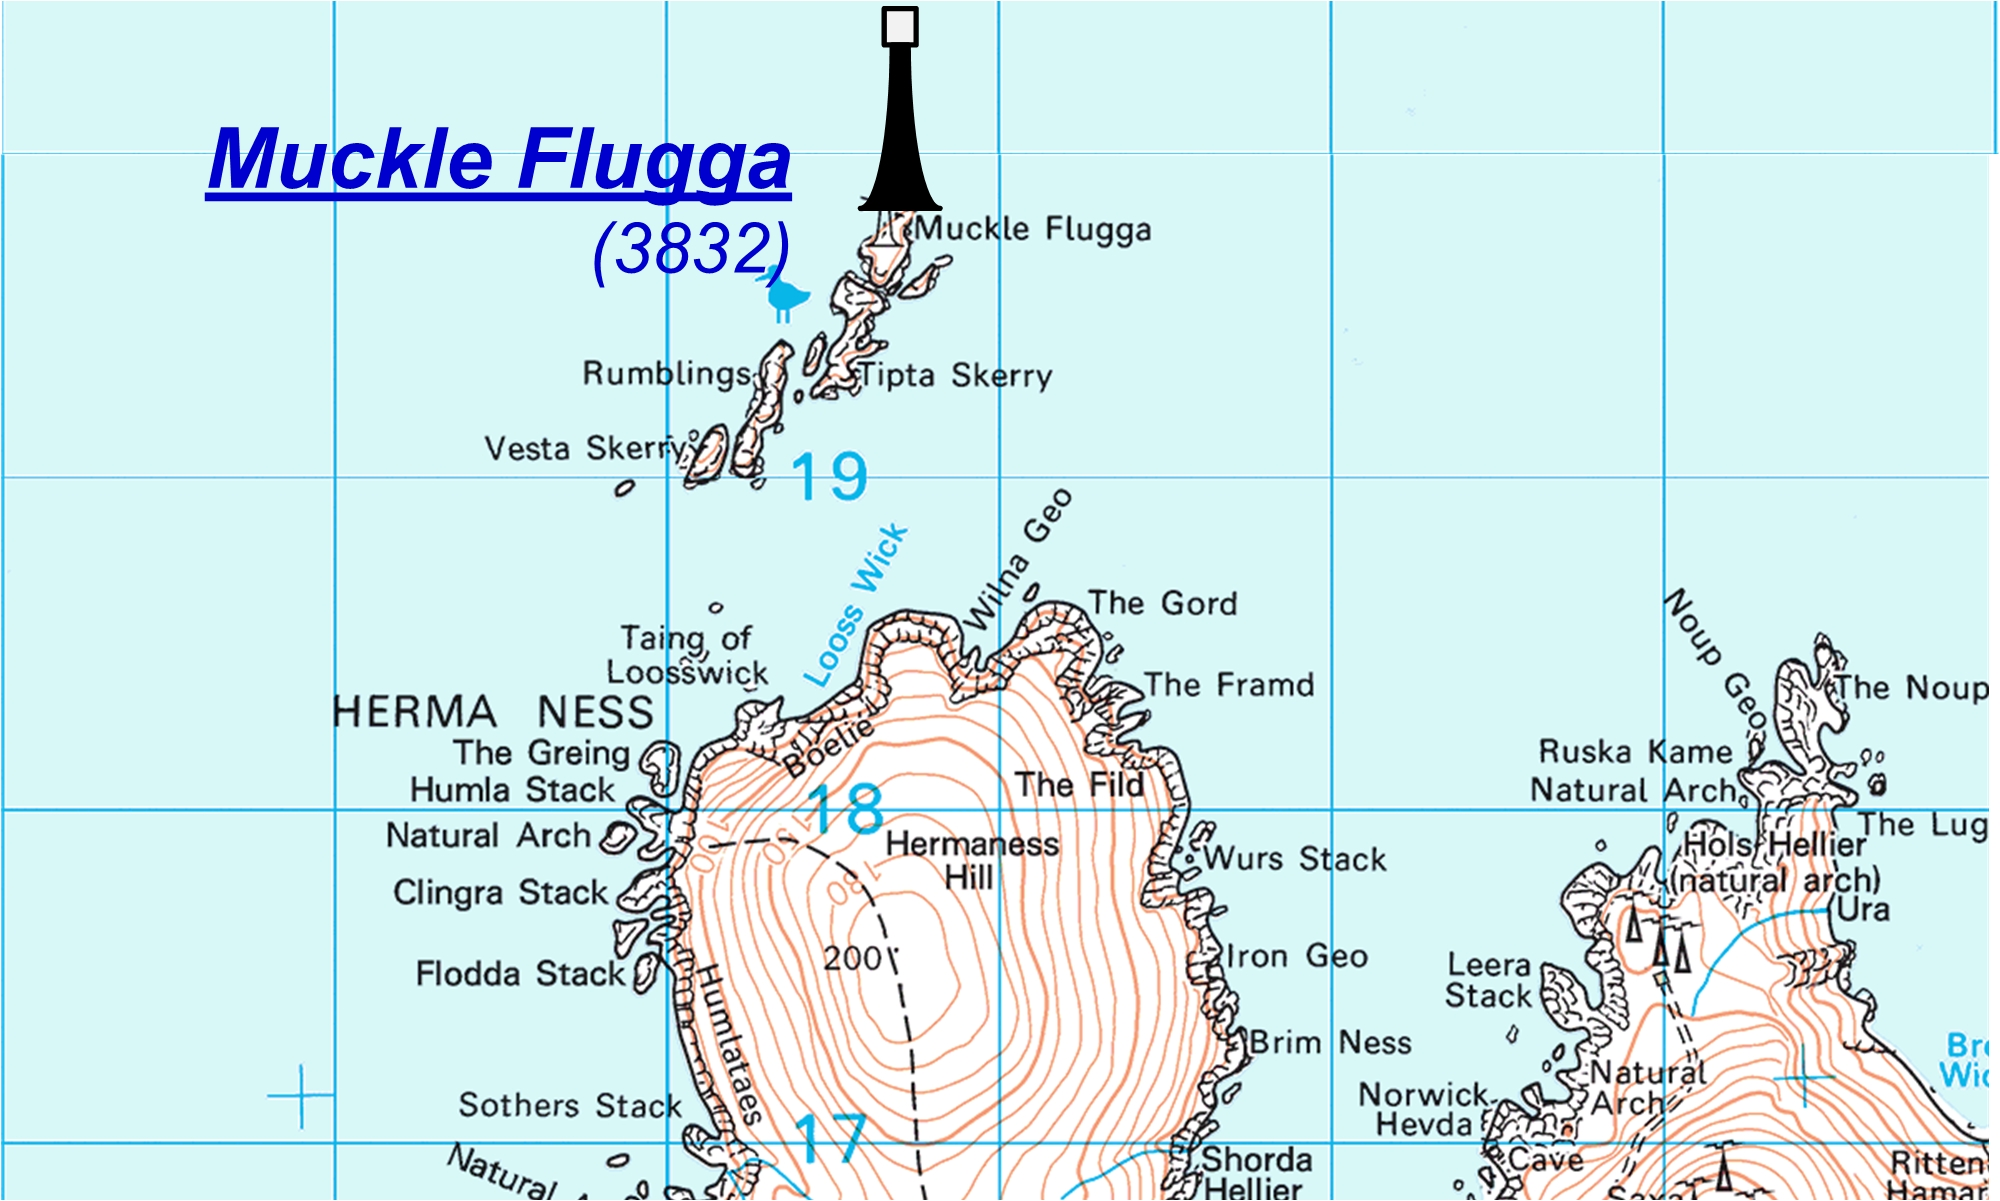 Muckle Flugga map